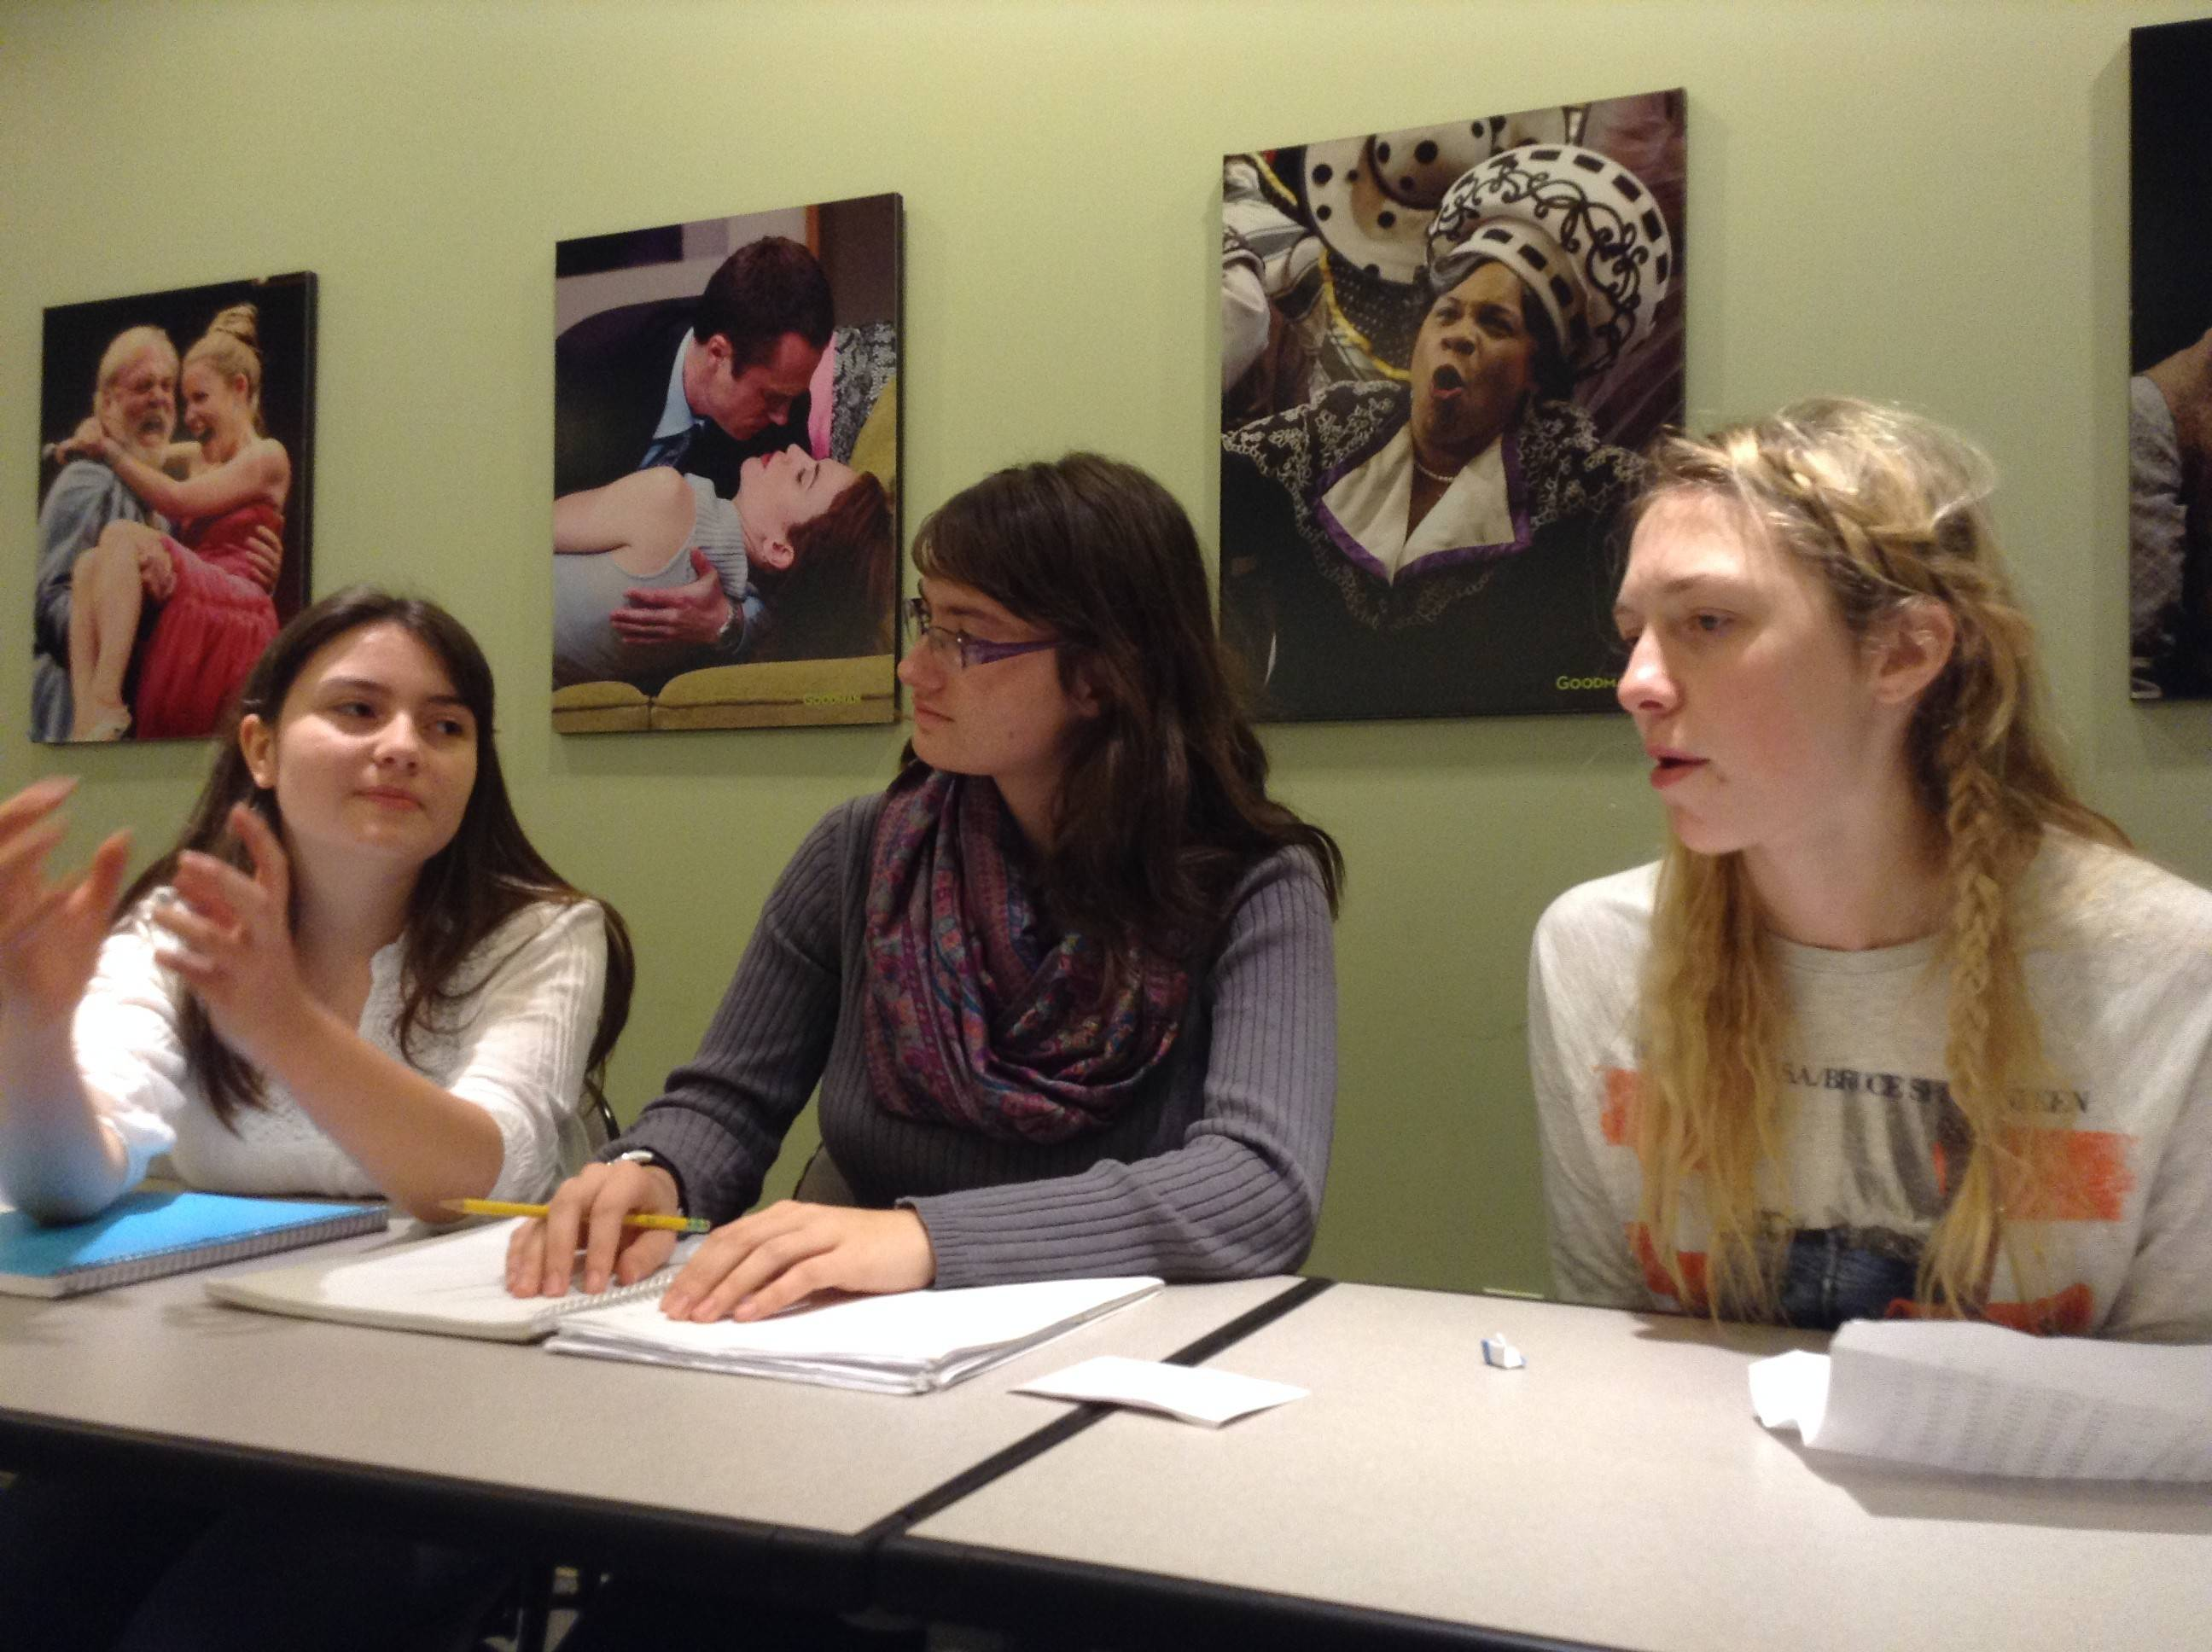 At a recent meeting of the Cindy Bandle Young Critics at Goodman Theatre, suburban high school students Nina Wilson, left, Ariel Majewski, center and Maya St. Clair discuss colorblind casting.